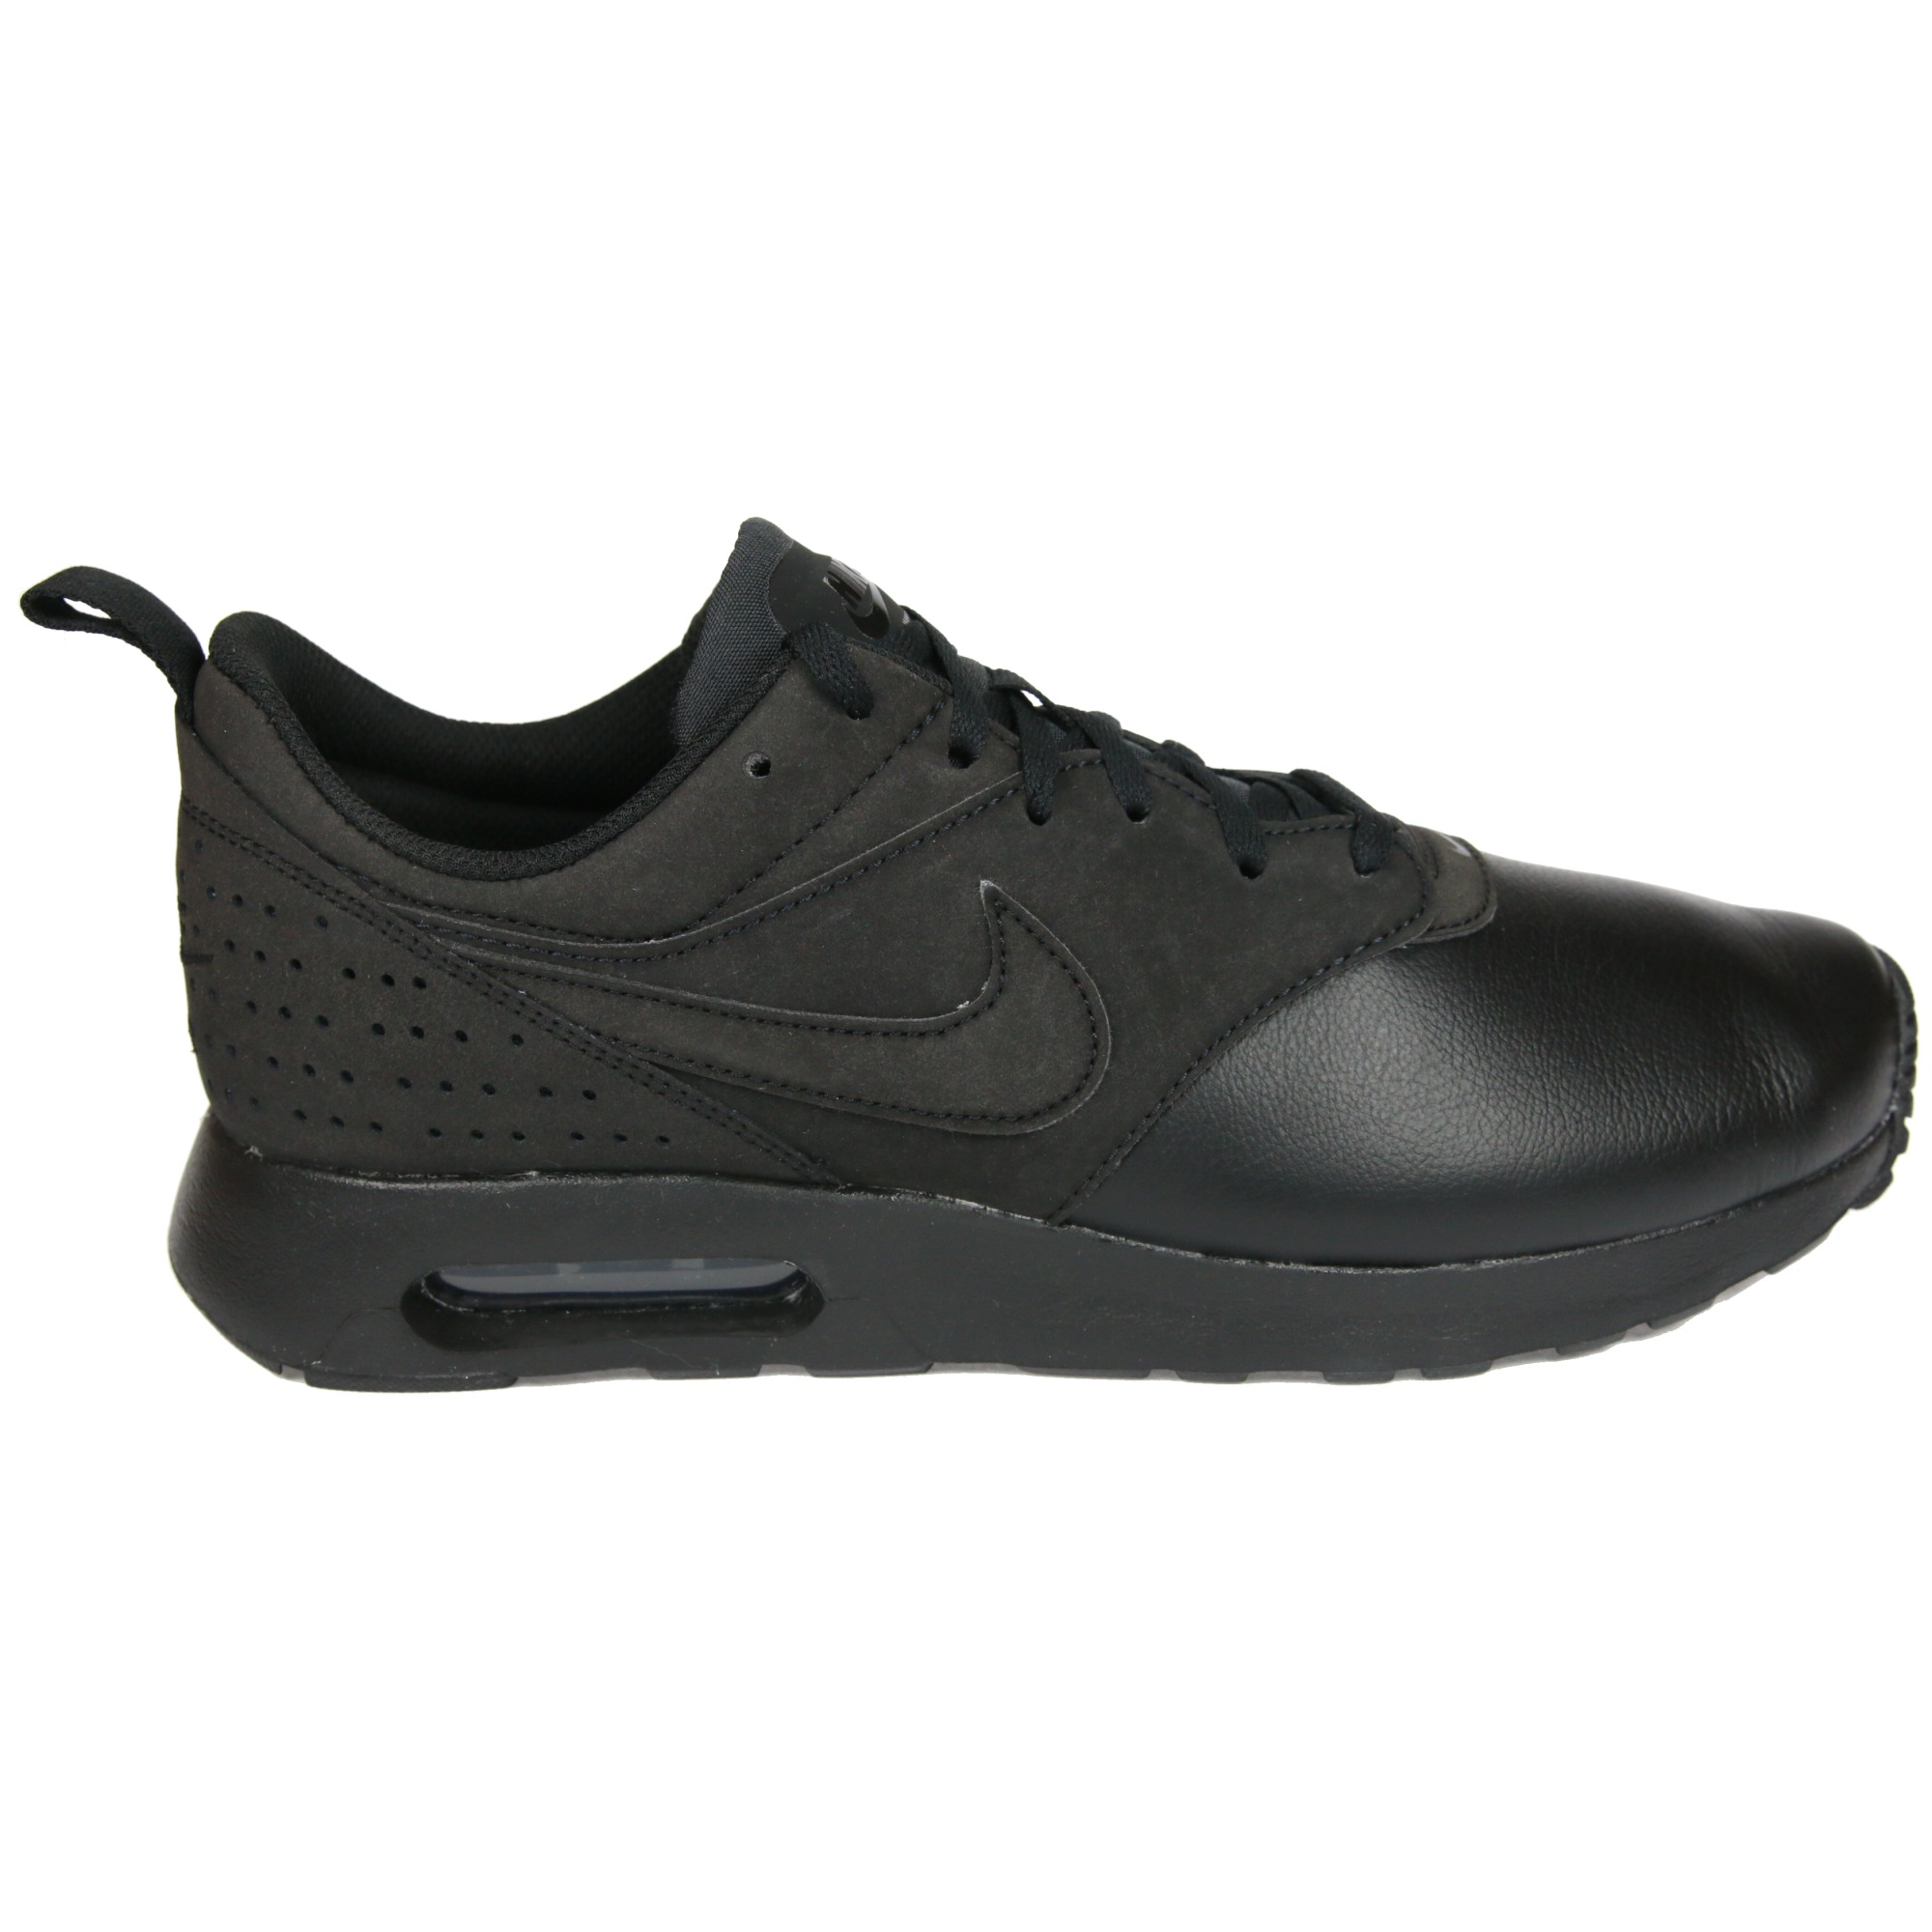 nike air max tavas essential schuhe sneaker turnschuhe herren grau schwarz blau ebay. Black Bedroom Furniture Sets. Home Design Ideas